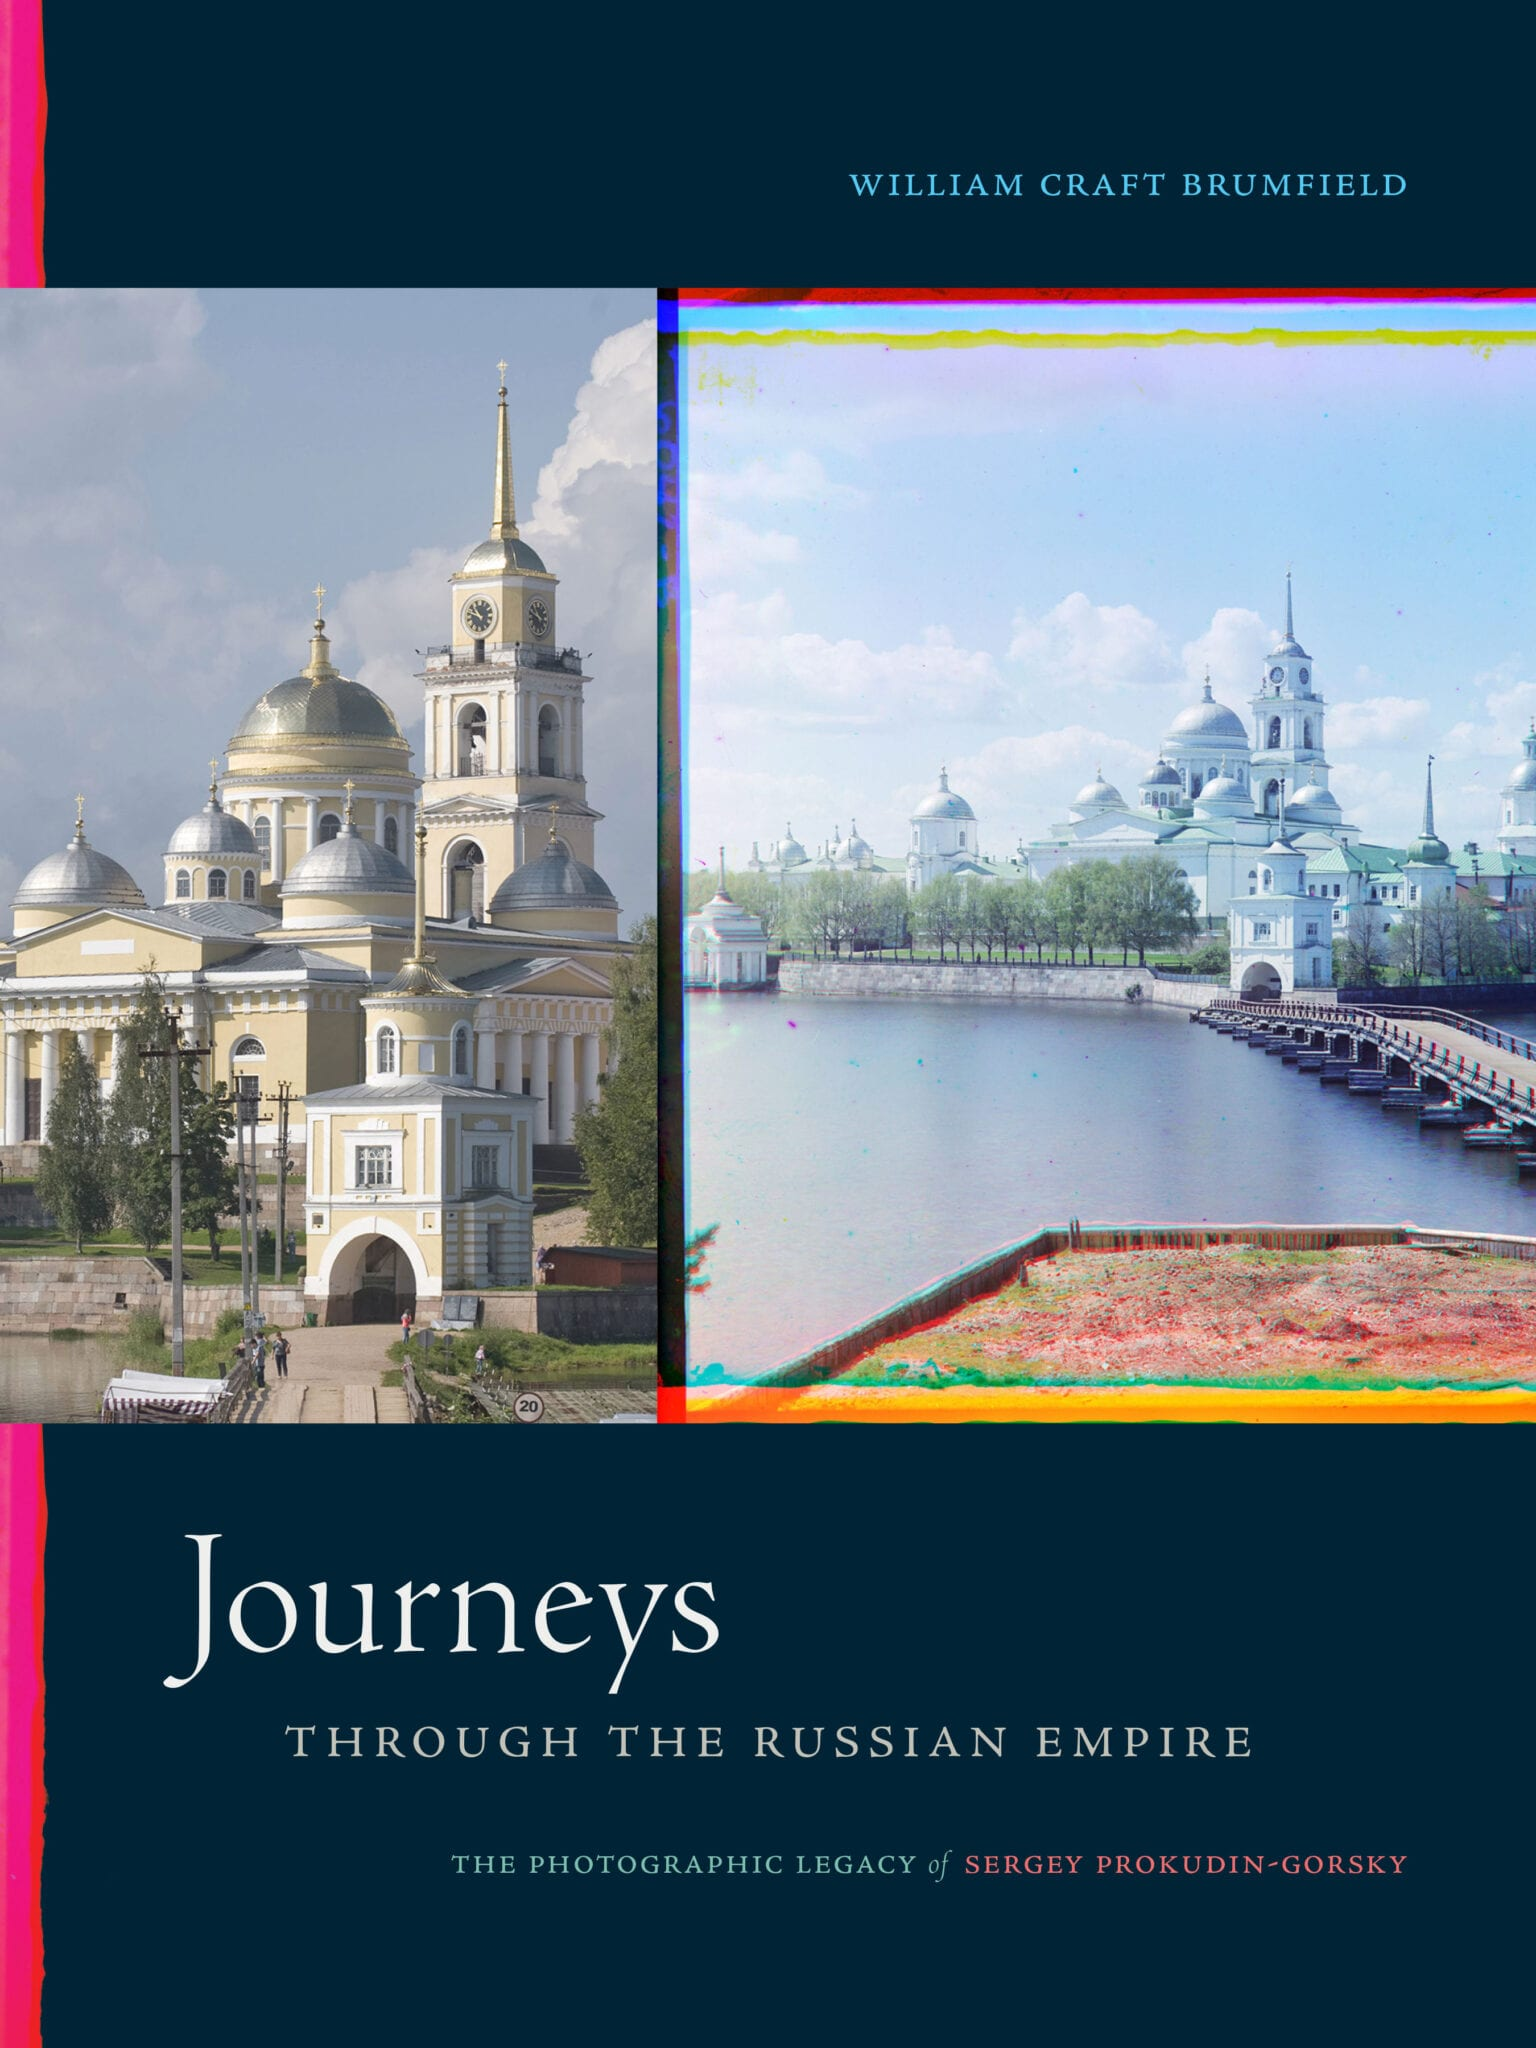 Cover of a large coffee table book on Russian empire